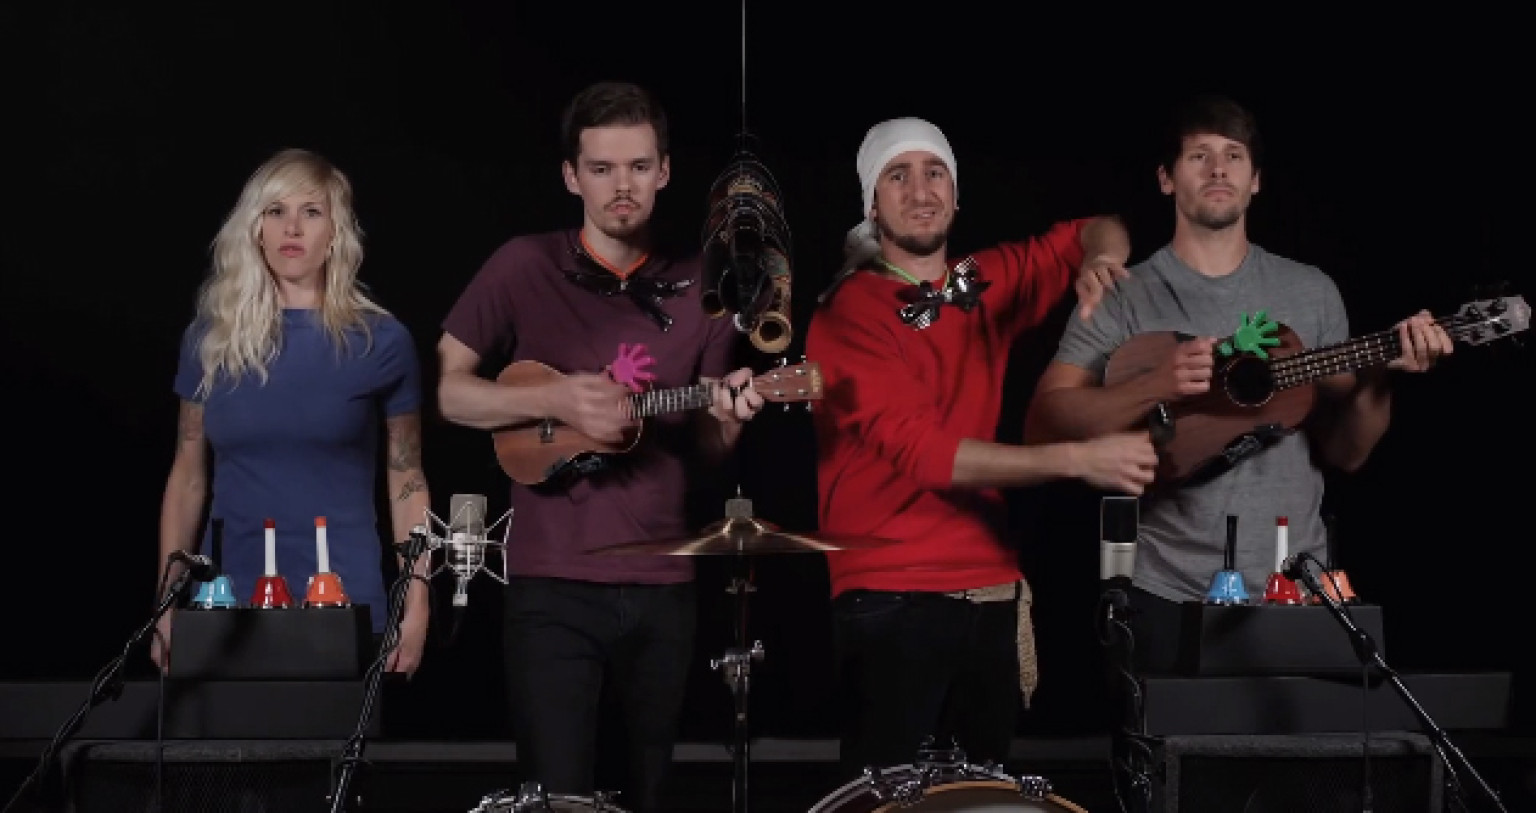 Walk Off The Earth Covers Royals Plays Musical Chairs